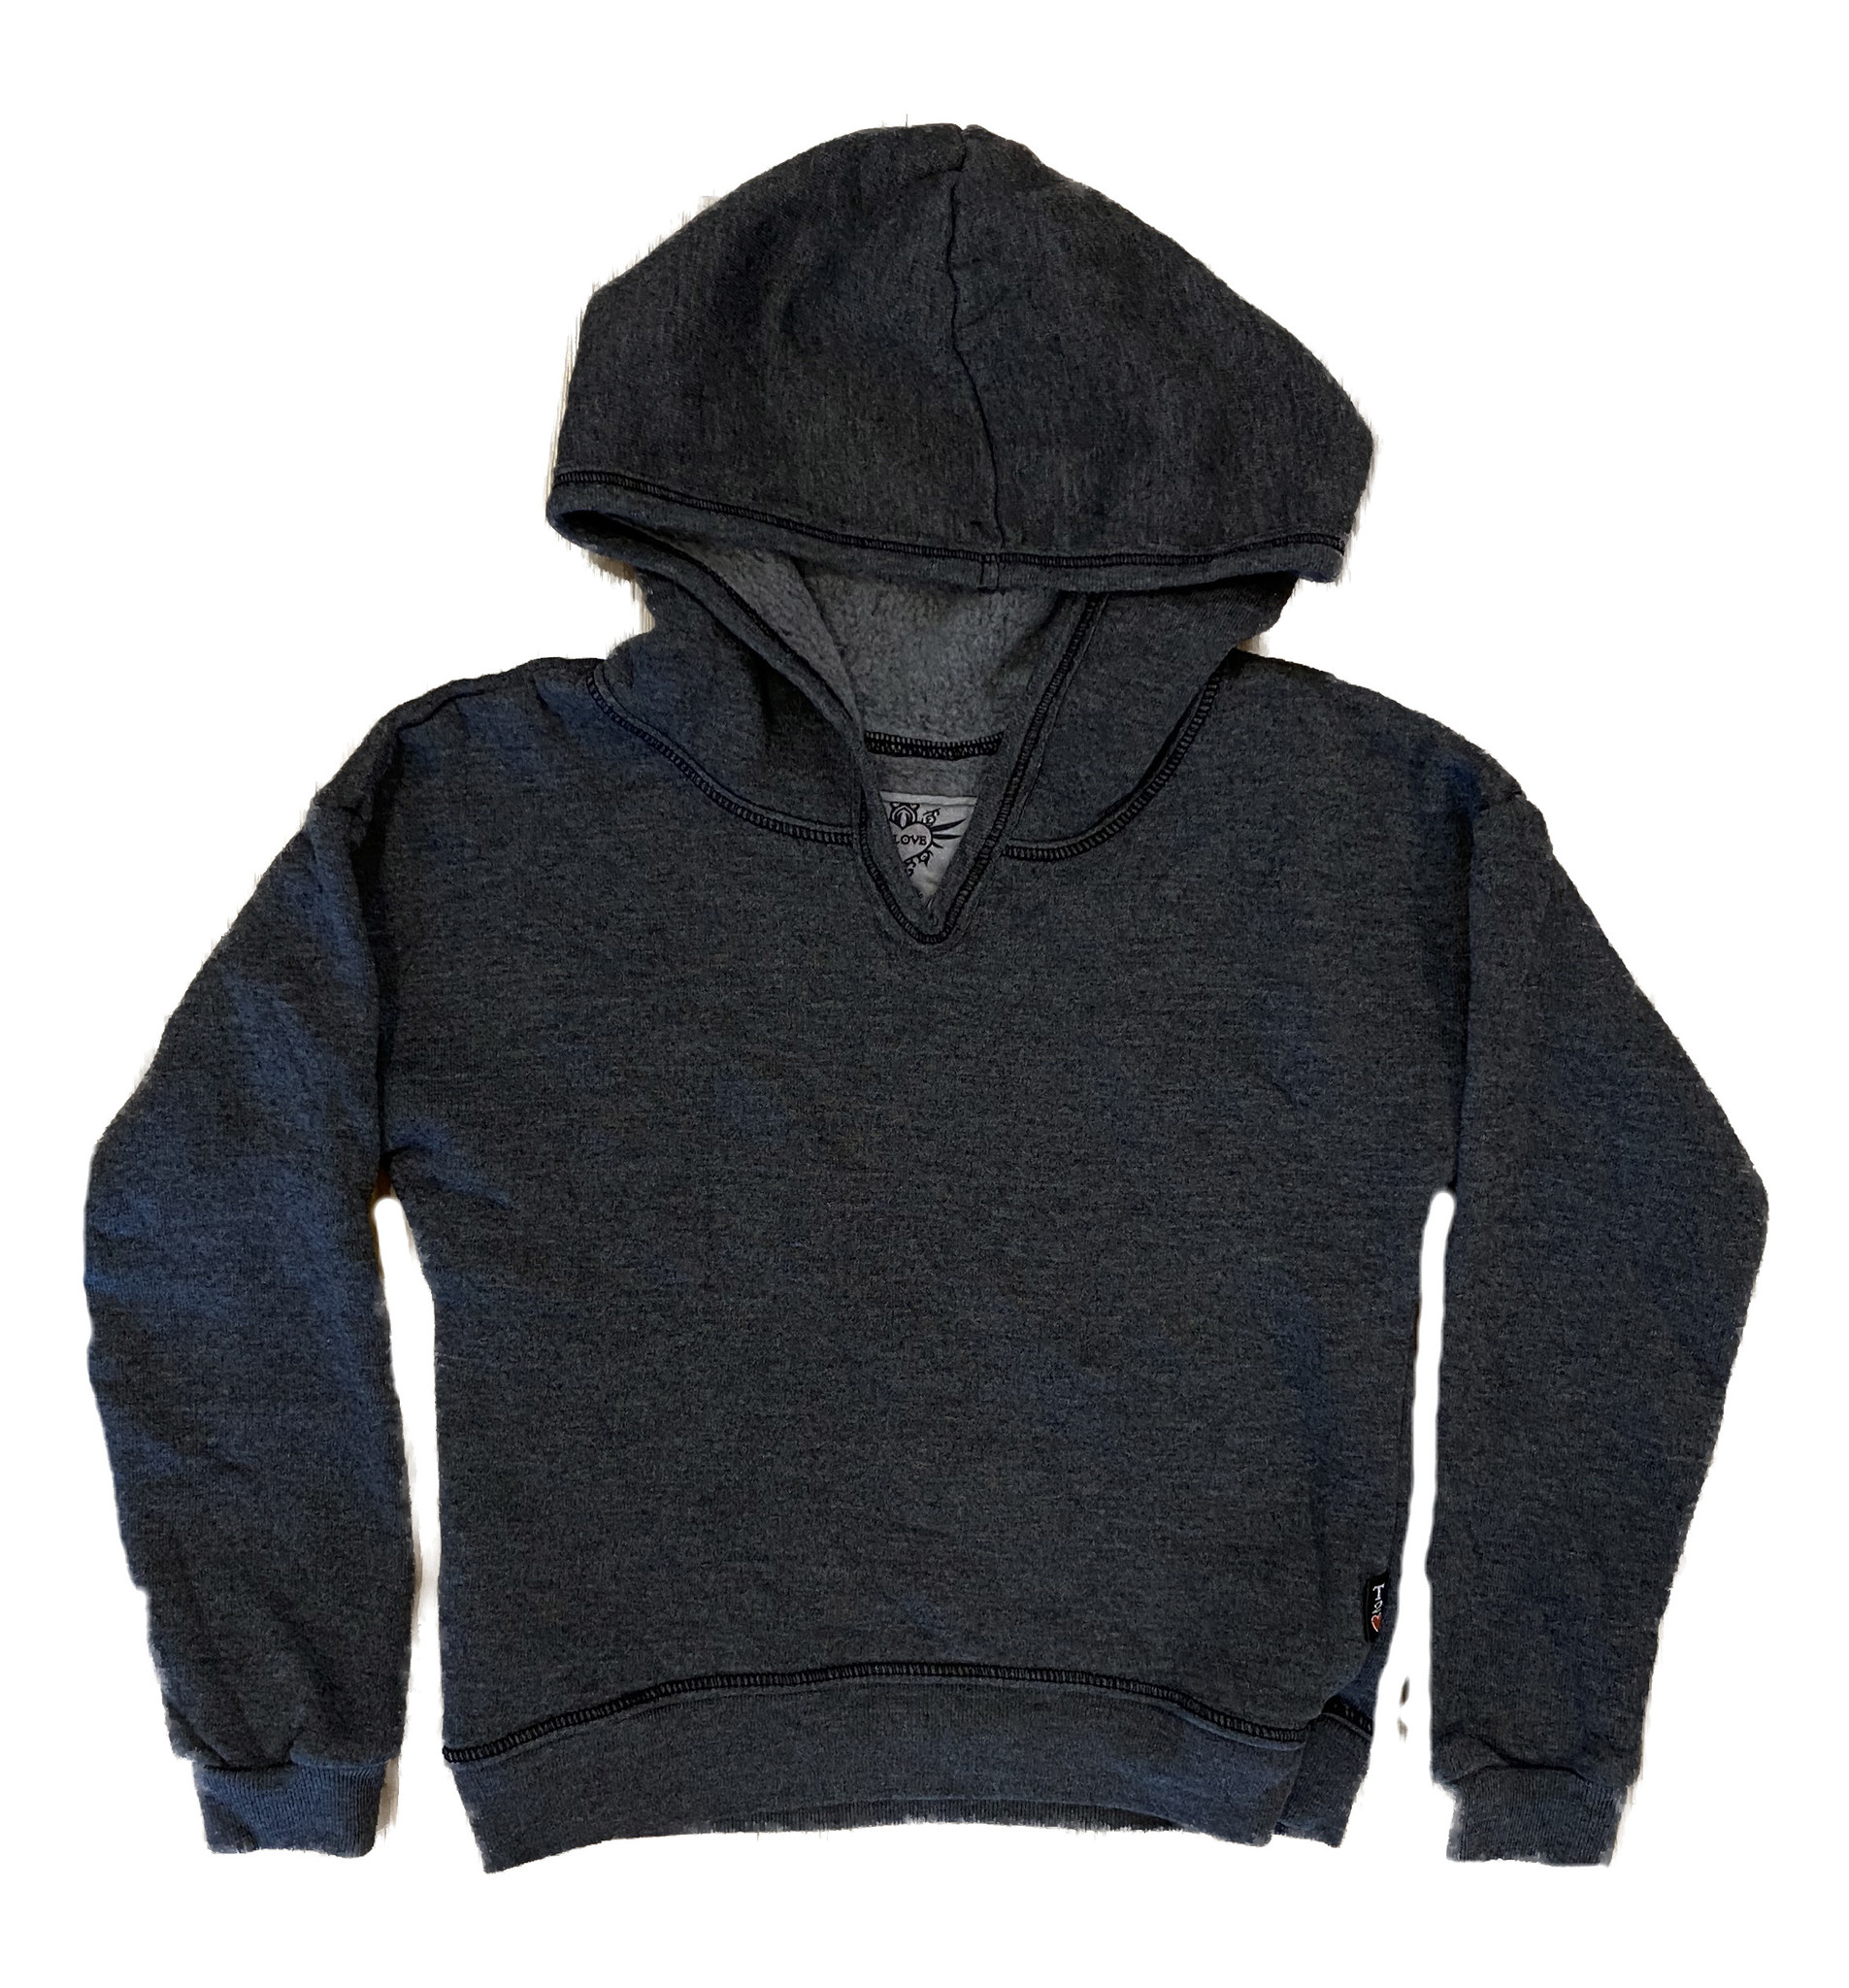 T2Love Charcoal Cropped Hooded Sweatshirt